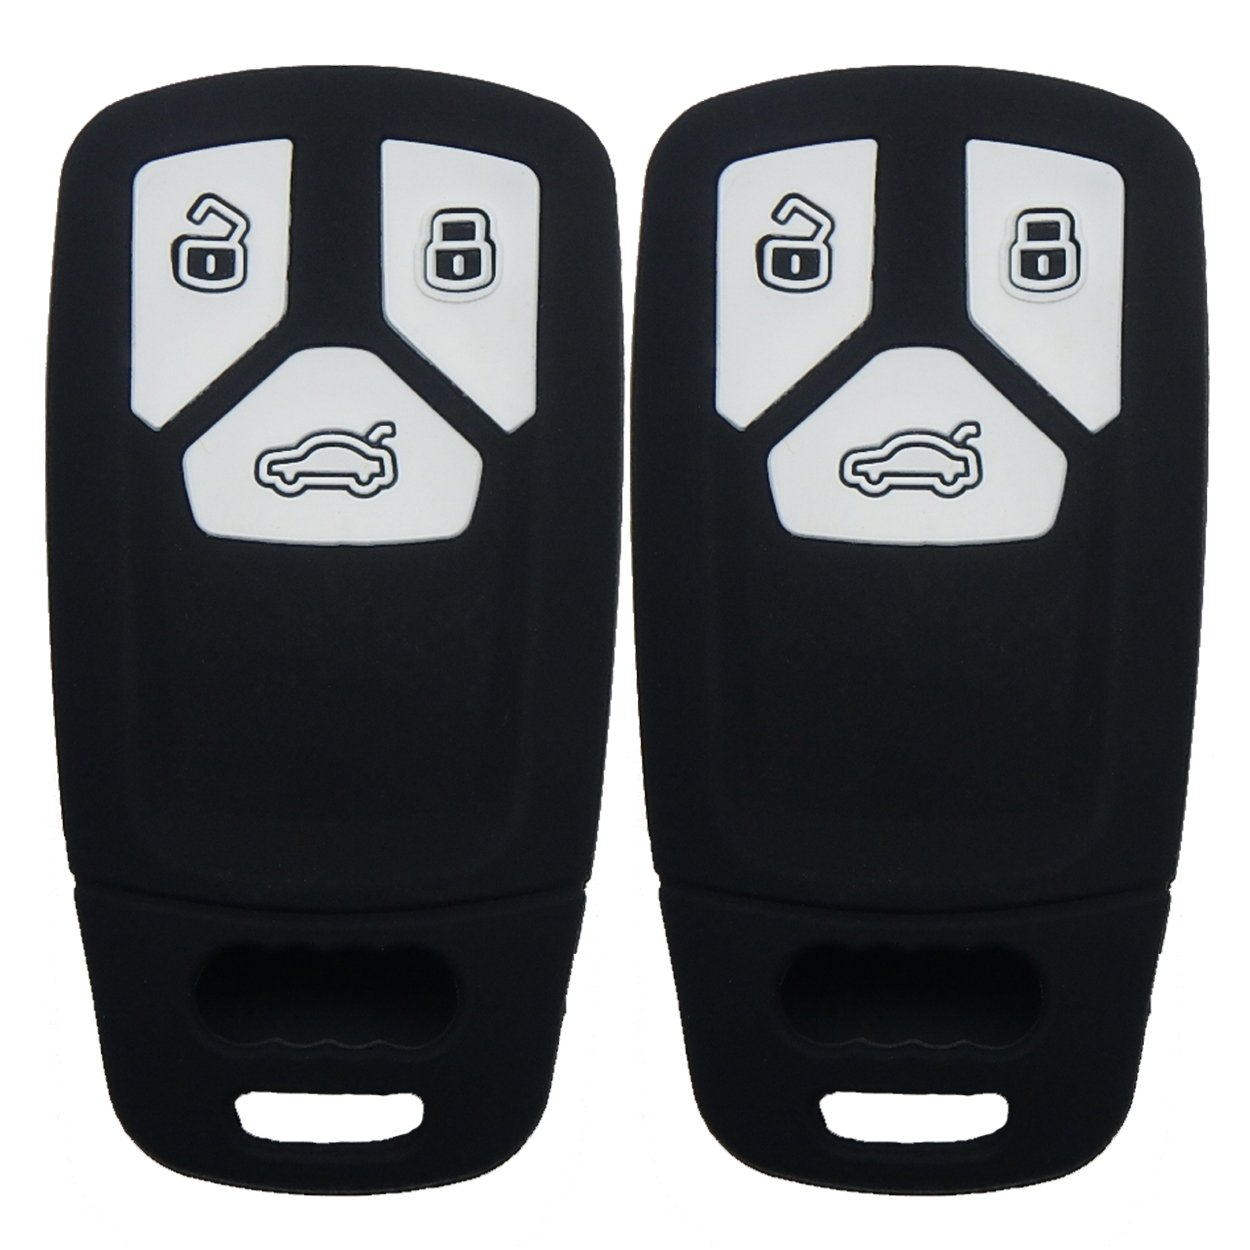 Insert Key to Ignition NOT FIT Coolbestda Leather 4button Smart Key Fob Remote Cover Case Keyless Entry Protector Skin Jacket for Audi A1 A3 A4 A5 A6 A7 A8 Q5 Q7 R8 S5 S7 Q5 RS